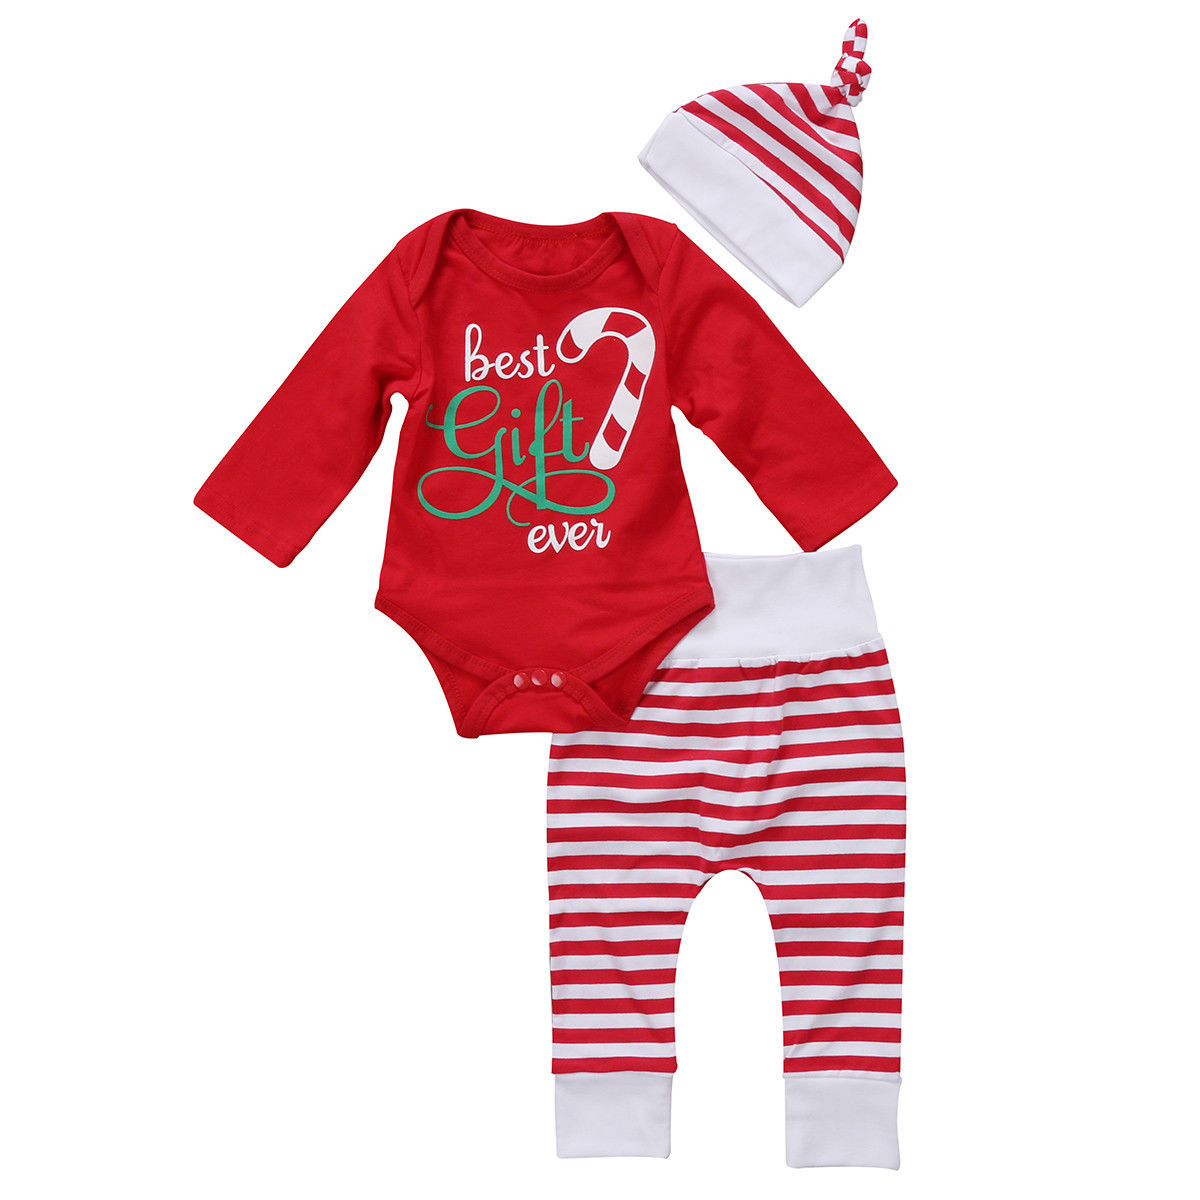 цена на 2017 Brand New 3PCS Set Newborn Toddler Infant Baby Girl Boy Clothes Romper Long Sleeve Shirt Tops Pants Hat Santa Candy Outfits